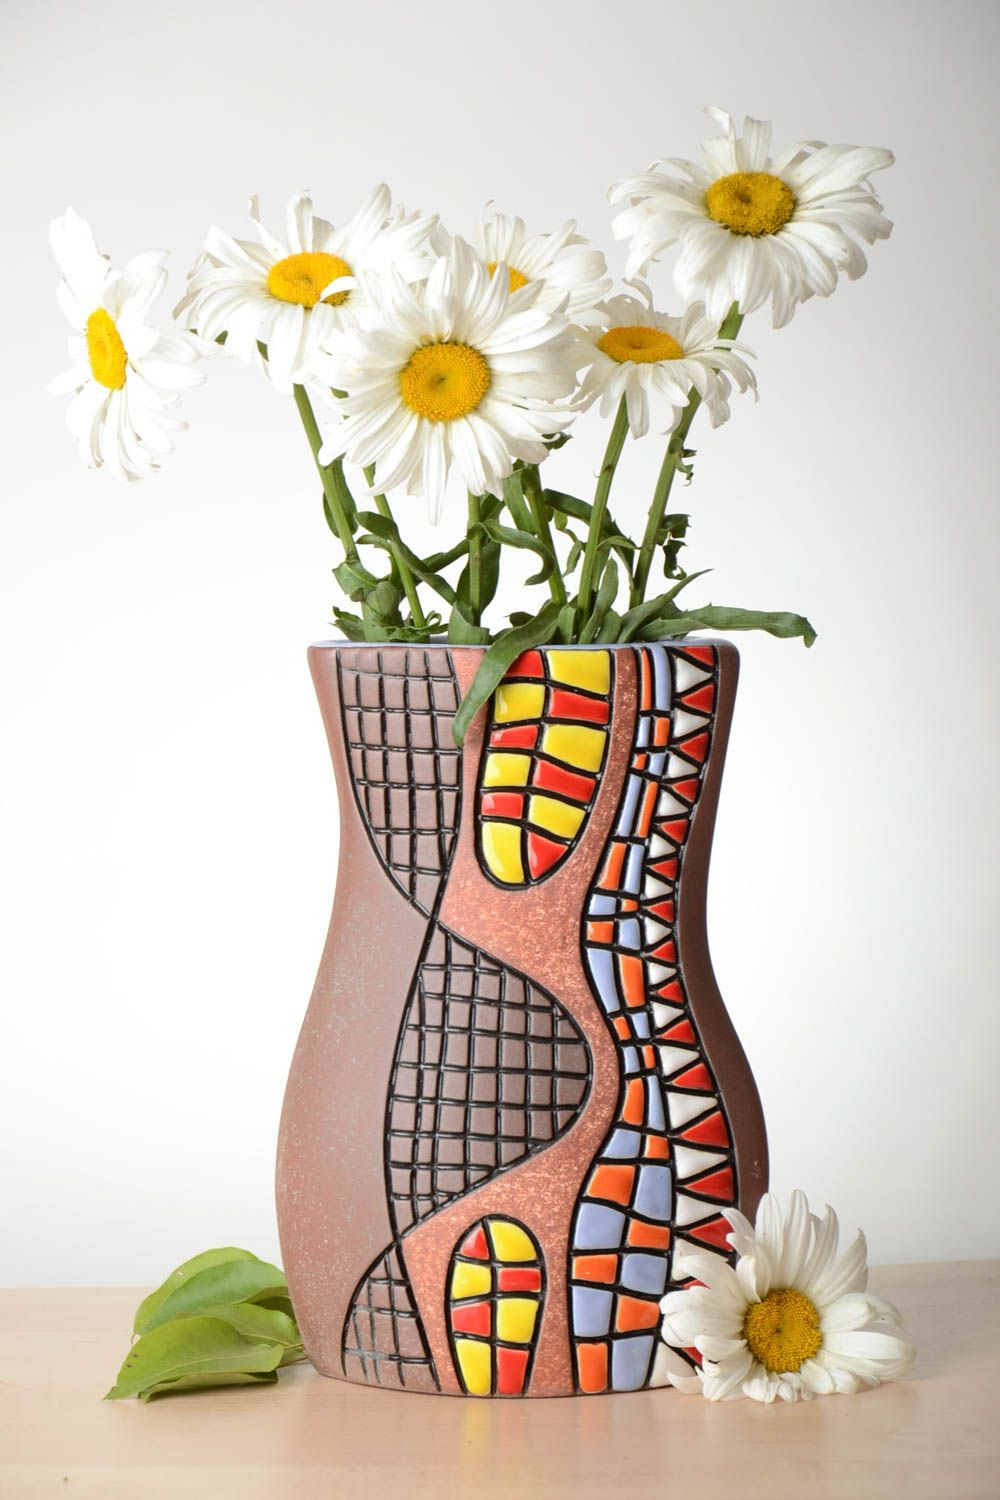 cute flower vase ideas of flower vase designs ideas flowers healthy regarding vases stylish handmade ceramic vase flower vase design clay craft room decor ideas madeheart